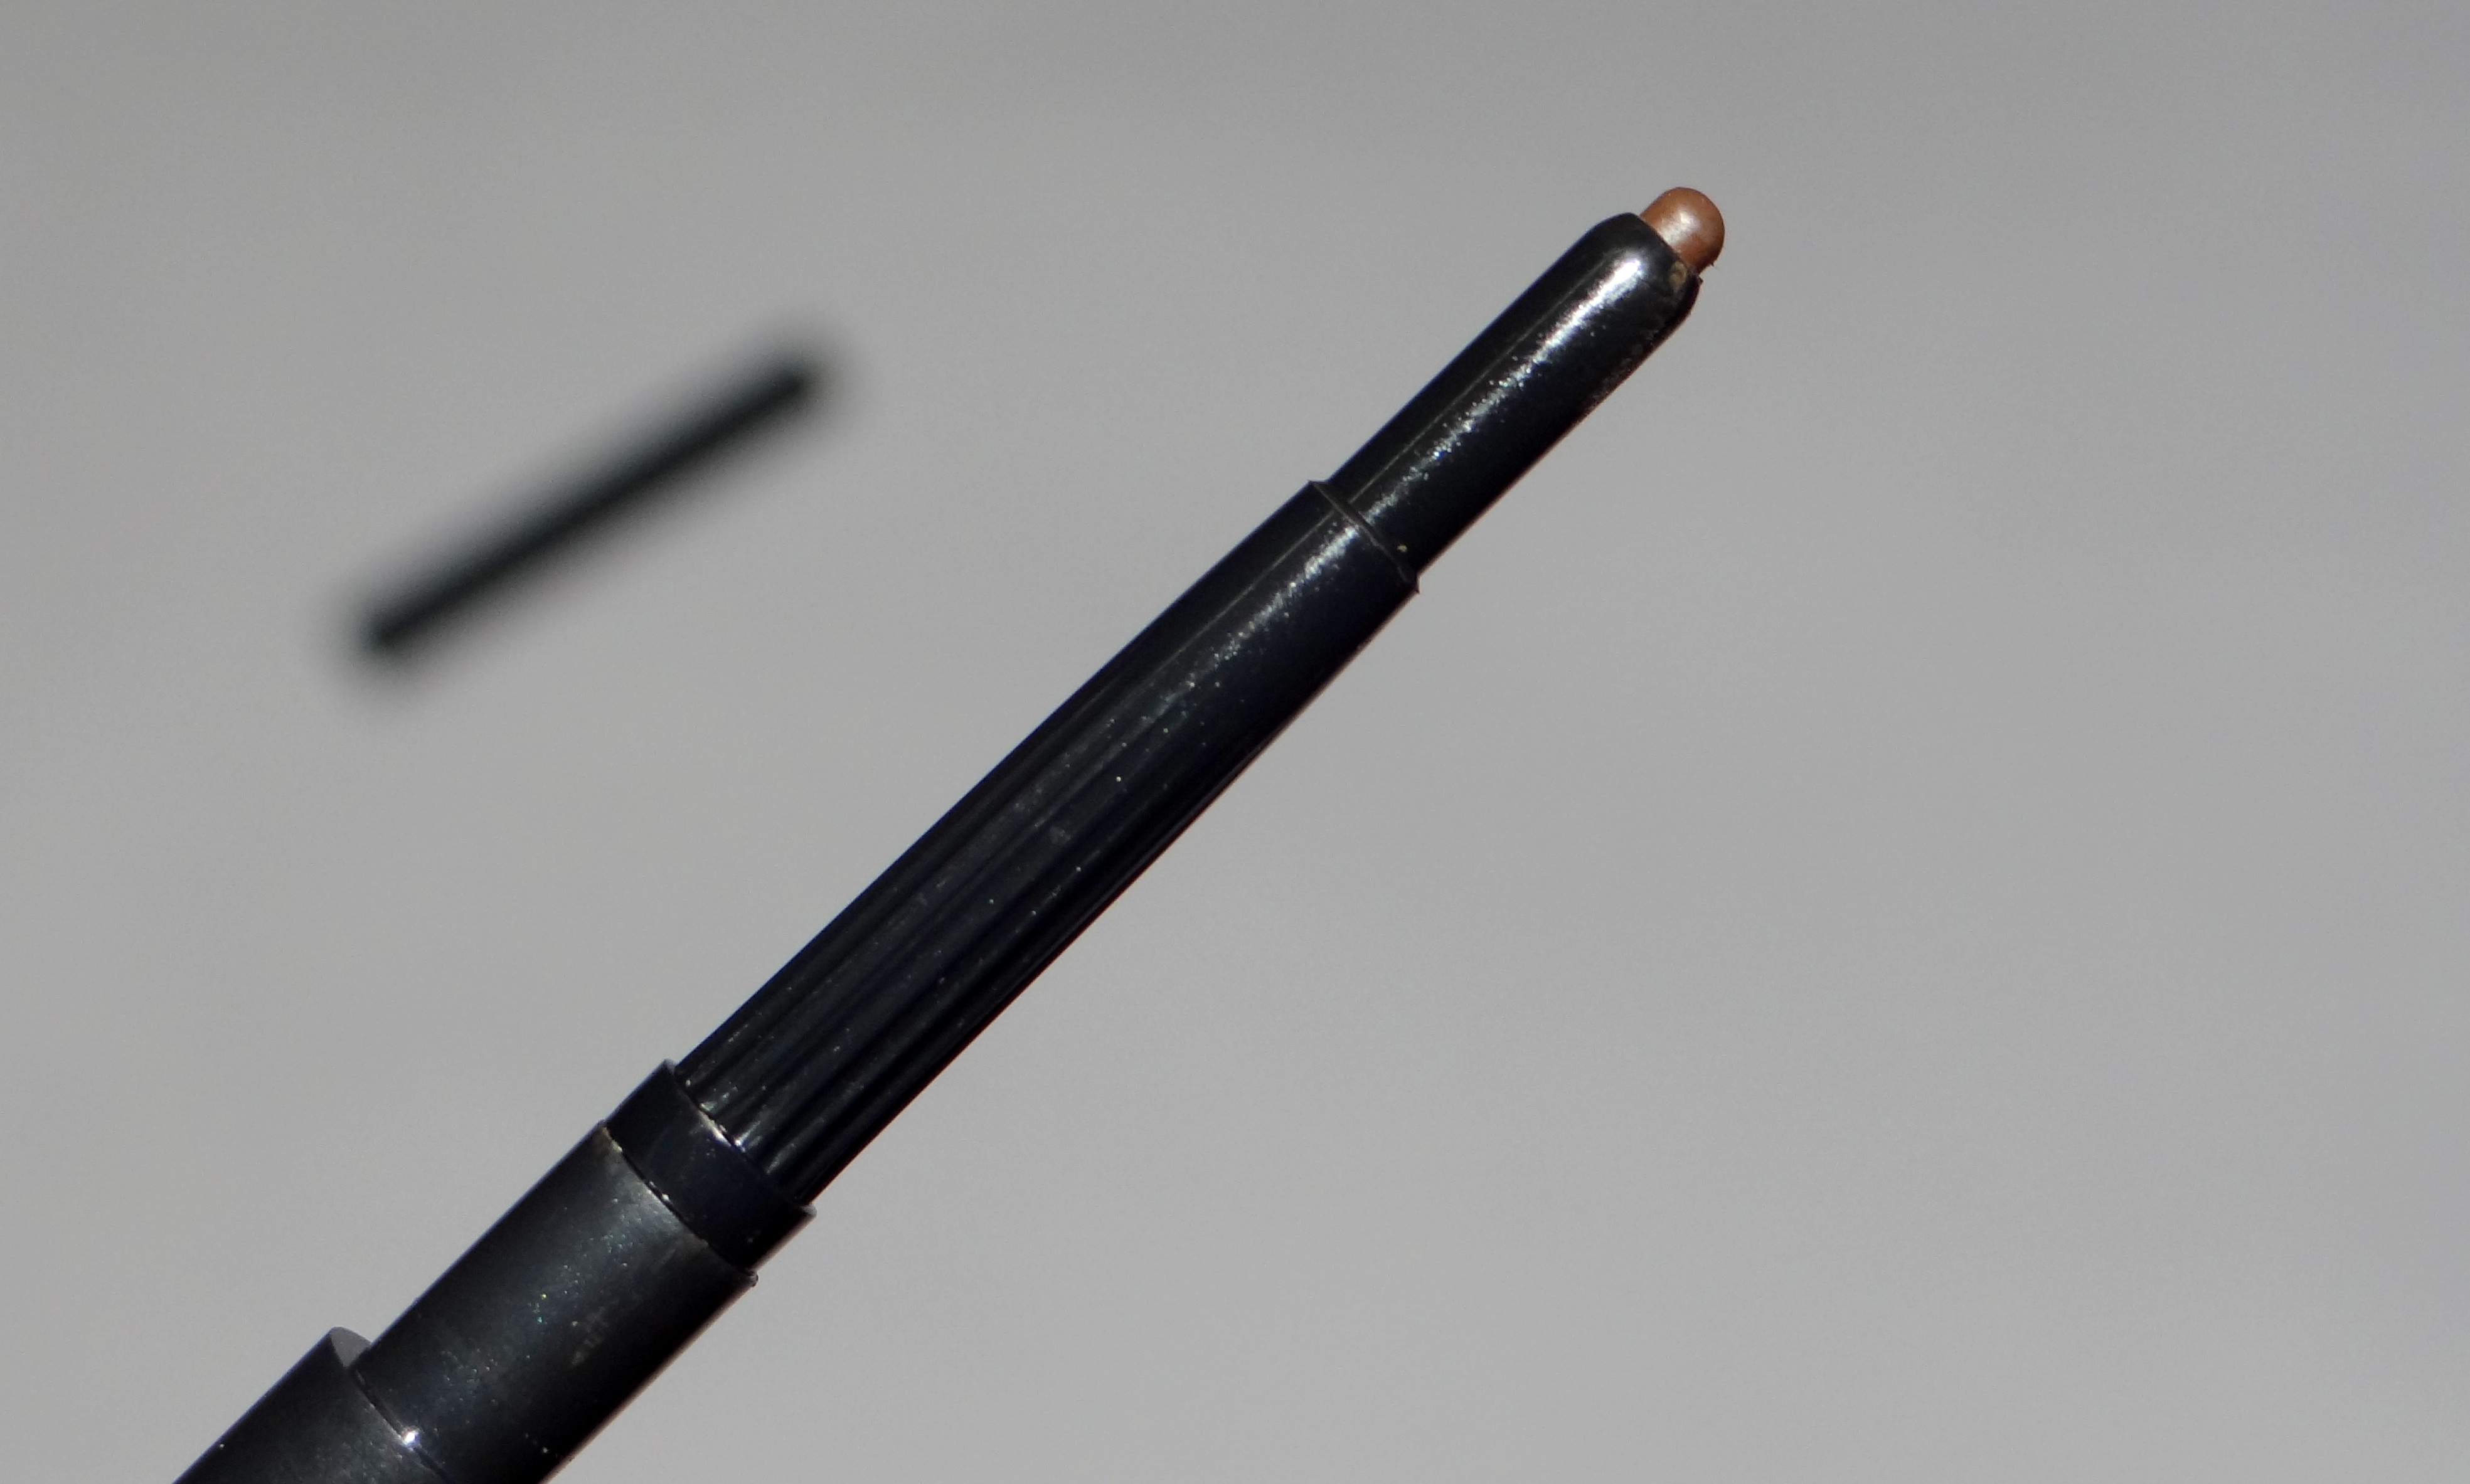 MAC Spiked Eyebrow pencil review (1)